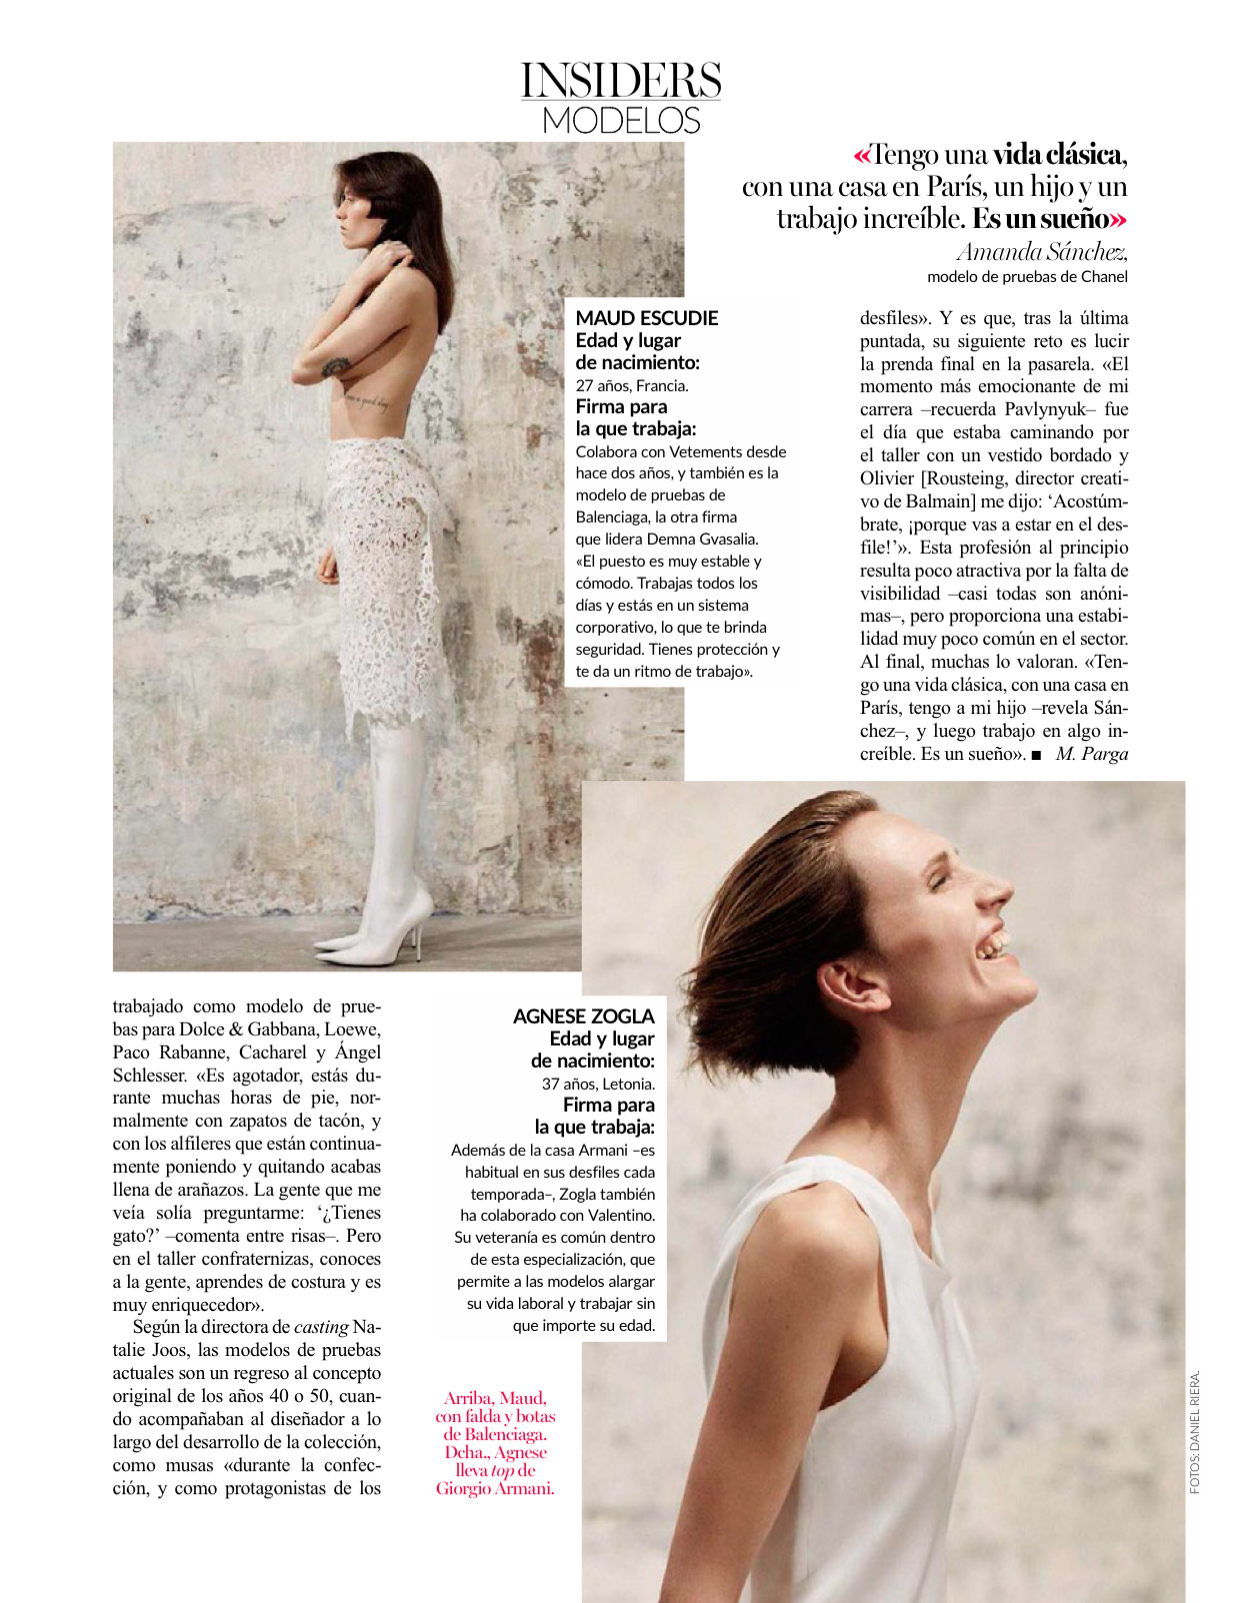 fitting-models-article--voguespain-may2017-4